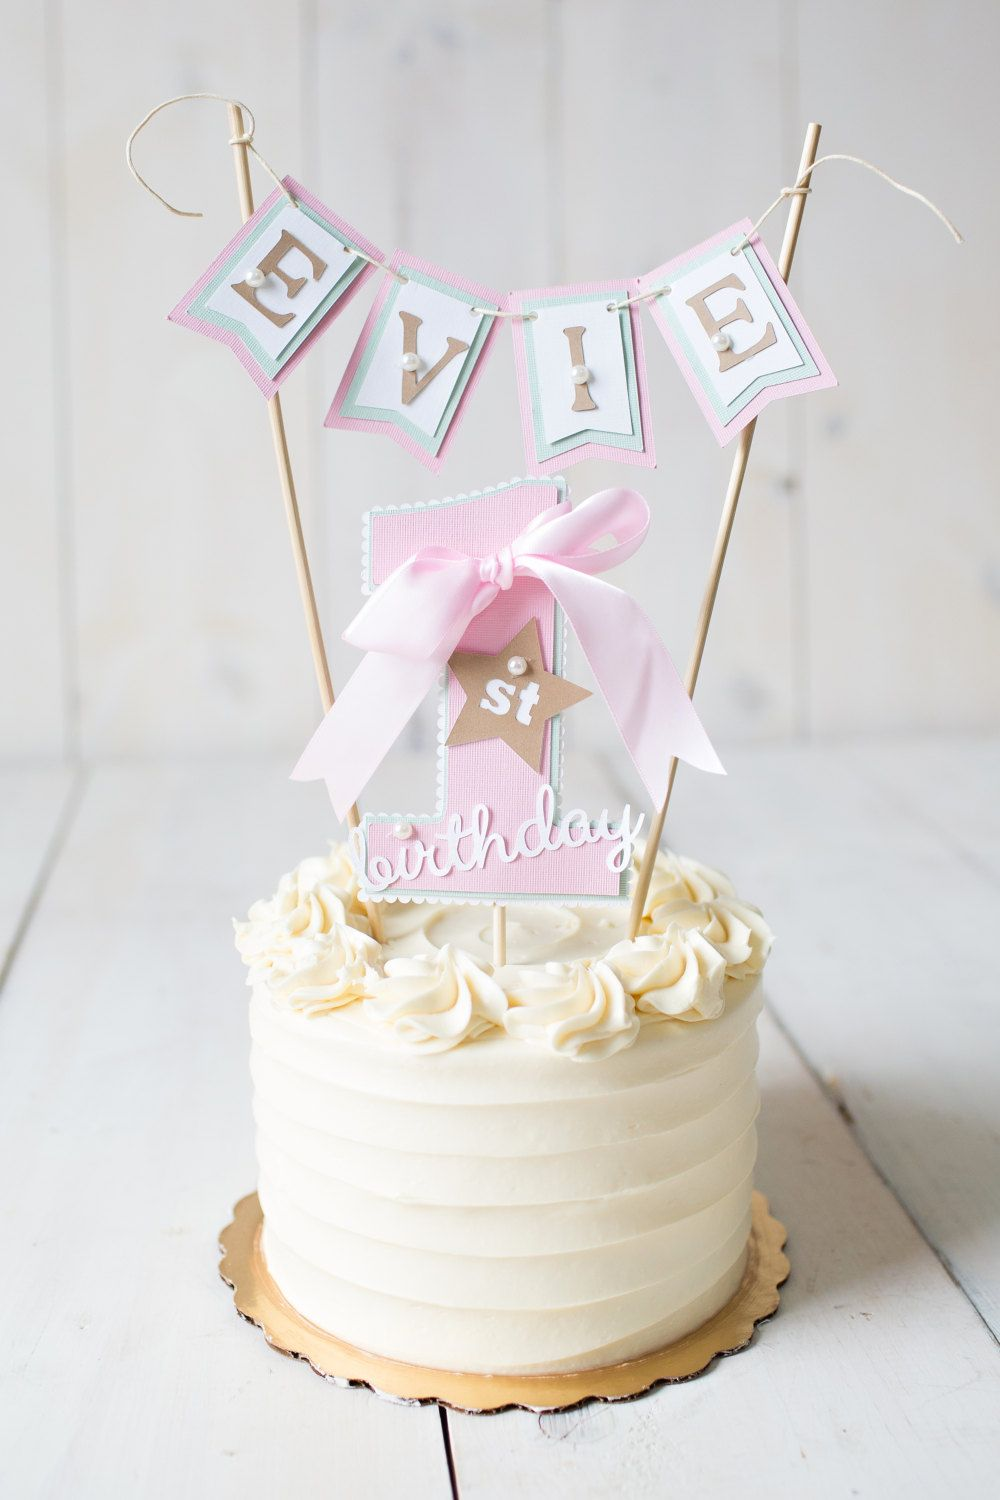 Cake Decorating Ideas Birthday Girl : Girl / First Birthday cake topper. 1st birthday party ...